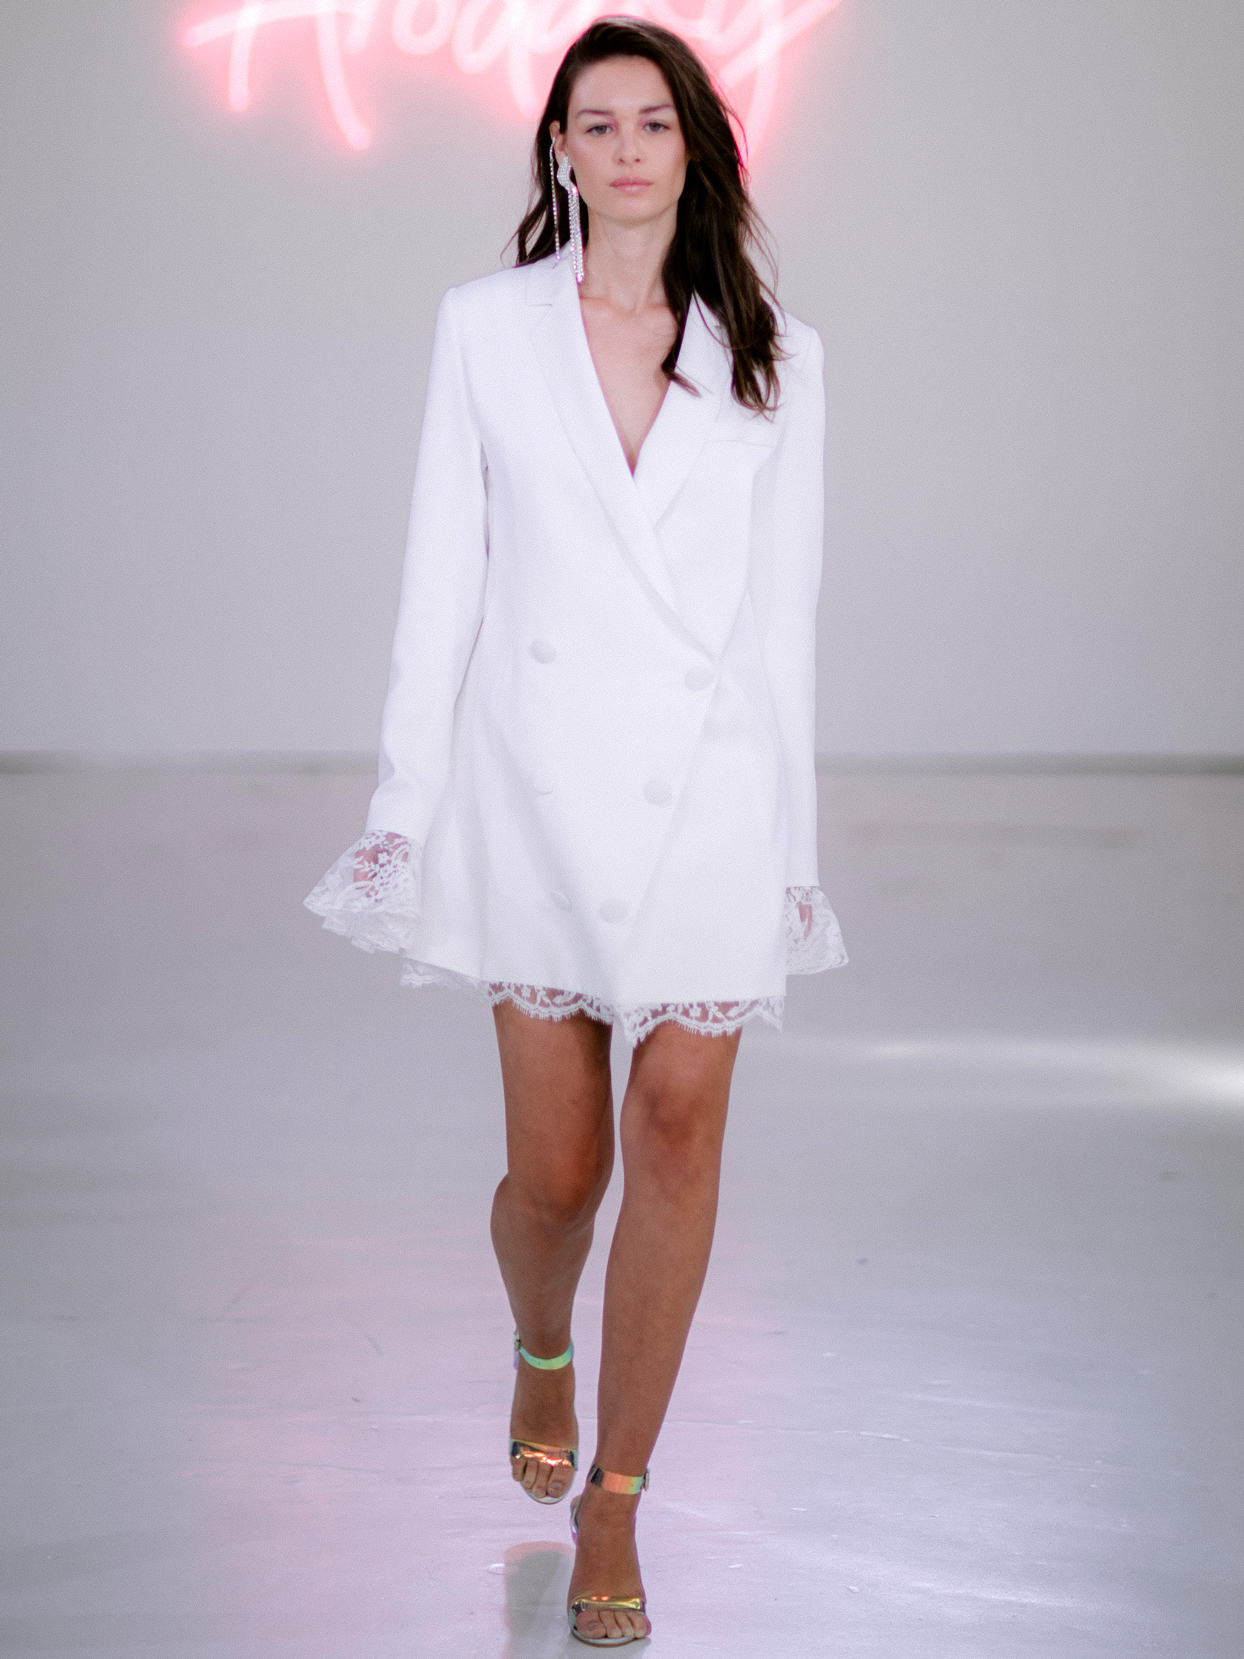 Rime Arodaky X The Mews Bridal double button up lace detail long sleeve mini wedding dress fall 2020